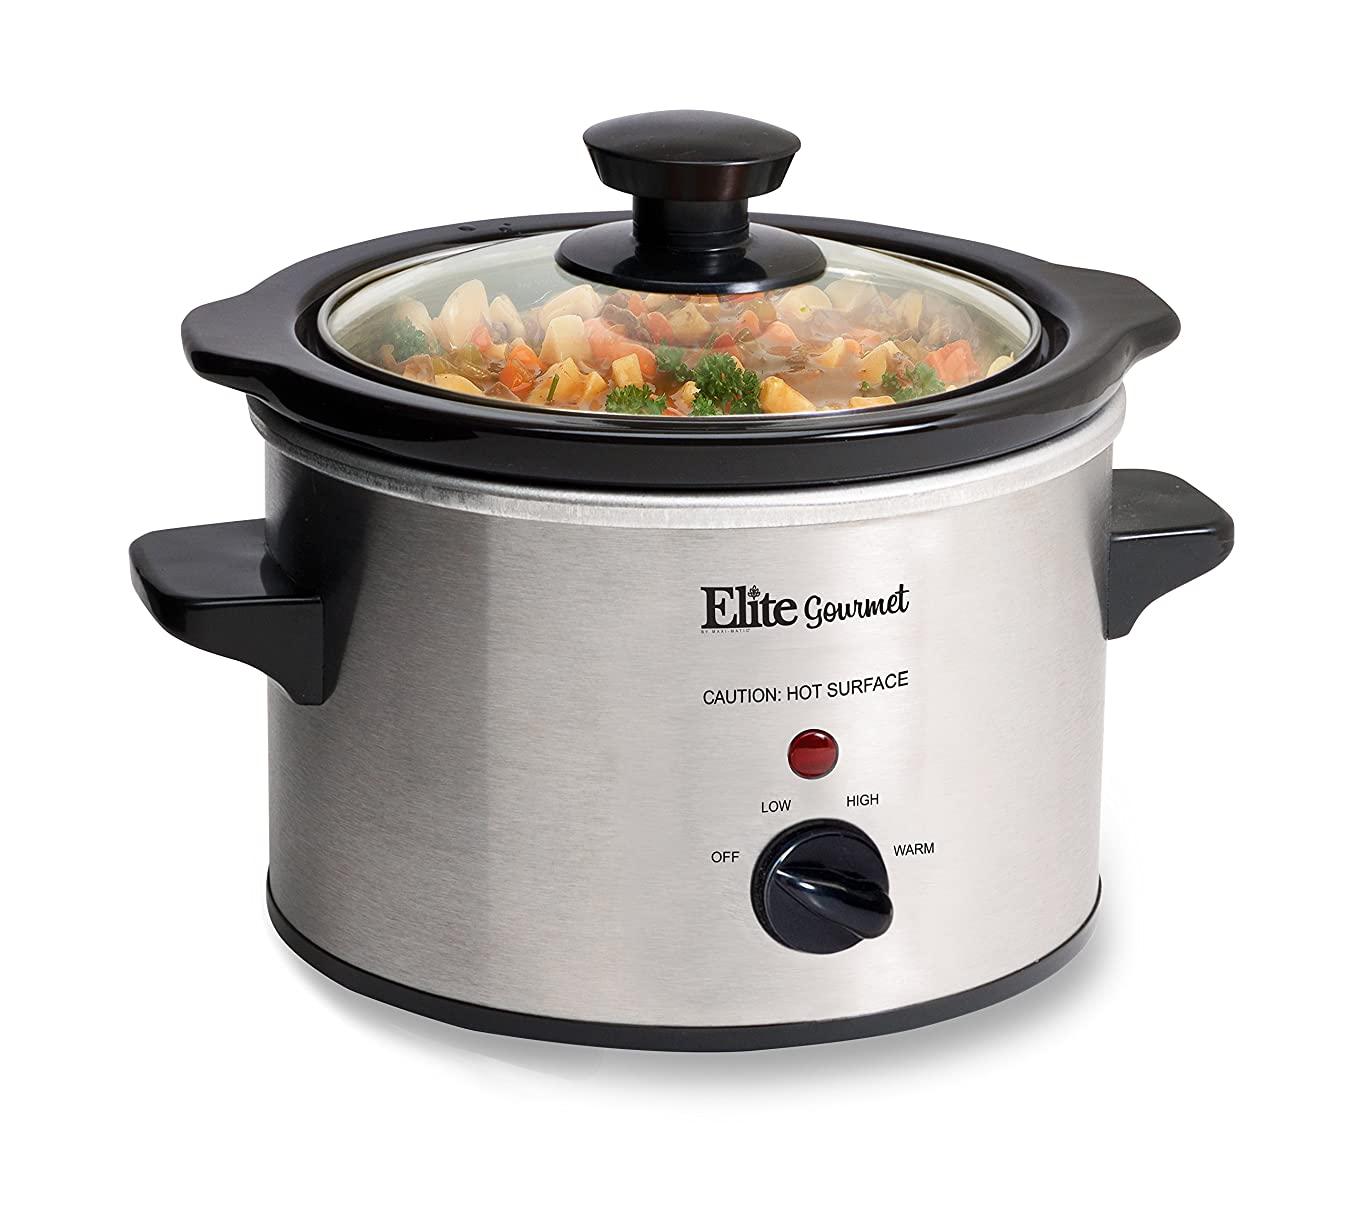 Elite Gourmet MST-250XS Electric Slow Cooker, Adjustable Temp, Entrees, Sauces, Stews & Dips, Dishwasher Glass Lid &?Ceramic Pot, 1.5Qt Capacity, Stainless Steel